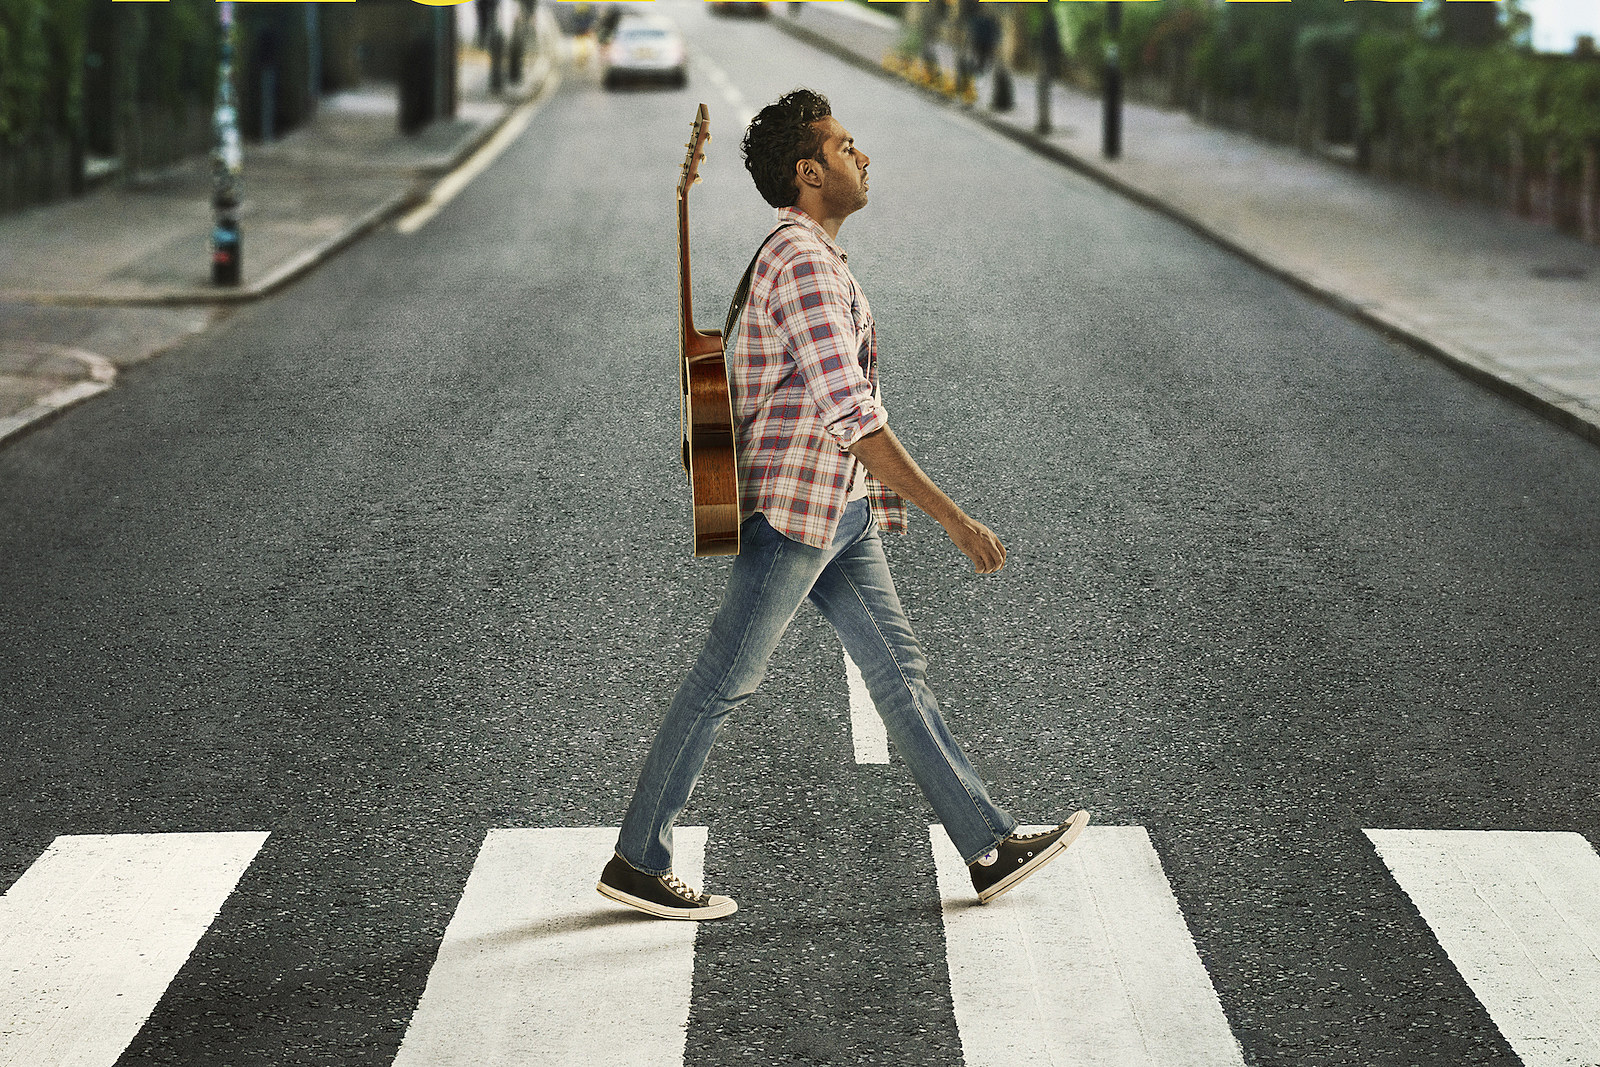 Watch Trailer for New Beatles-Related Movie, 'Yesterday'